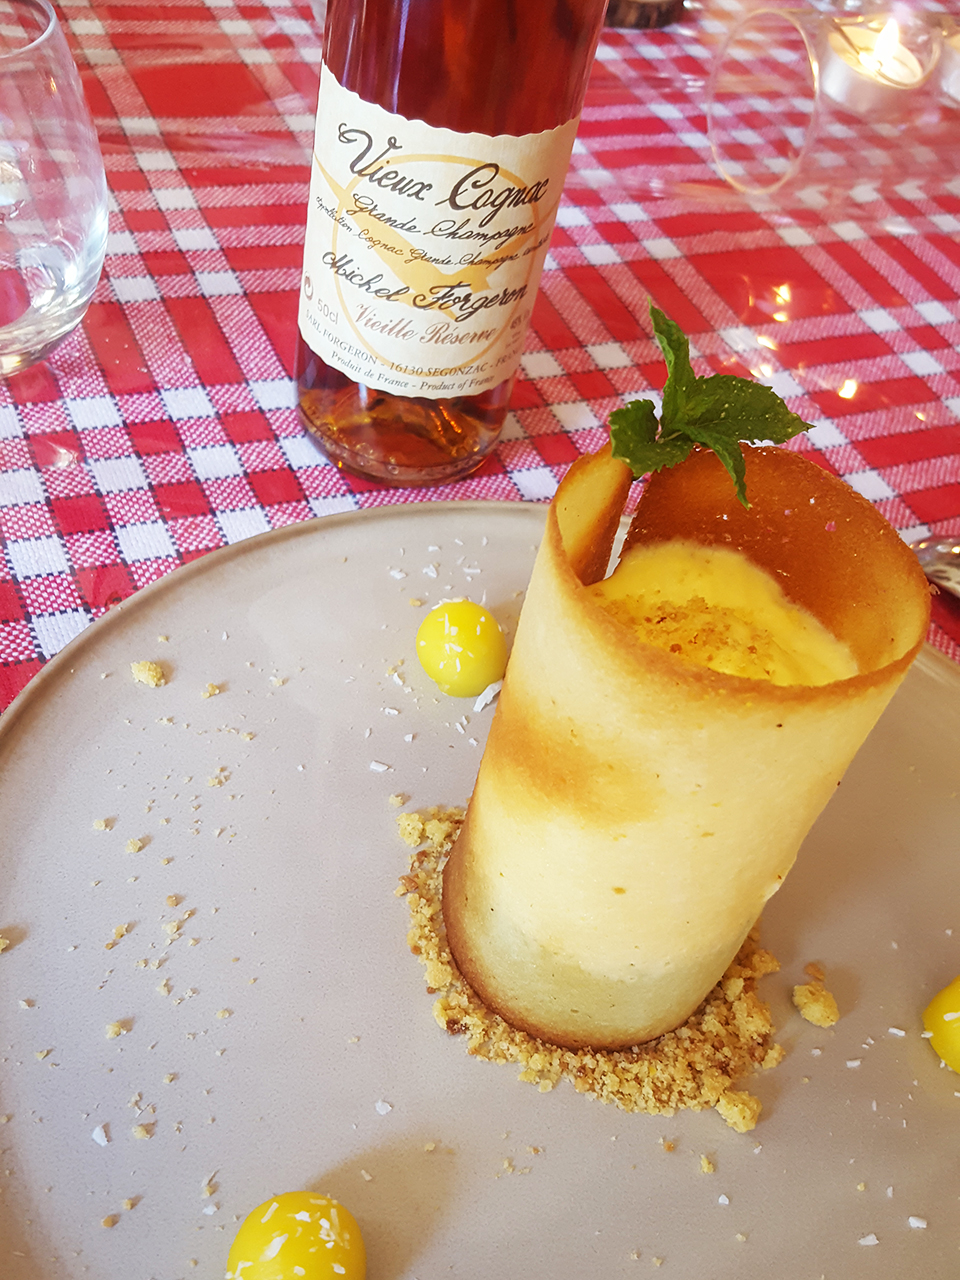 2018 06 26 08 Cognac pairing lunch spassion fruit dessert